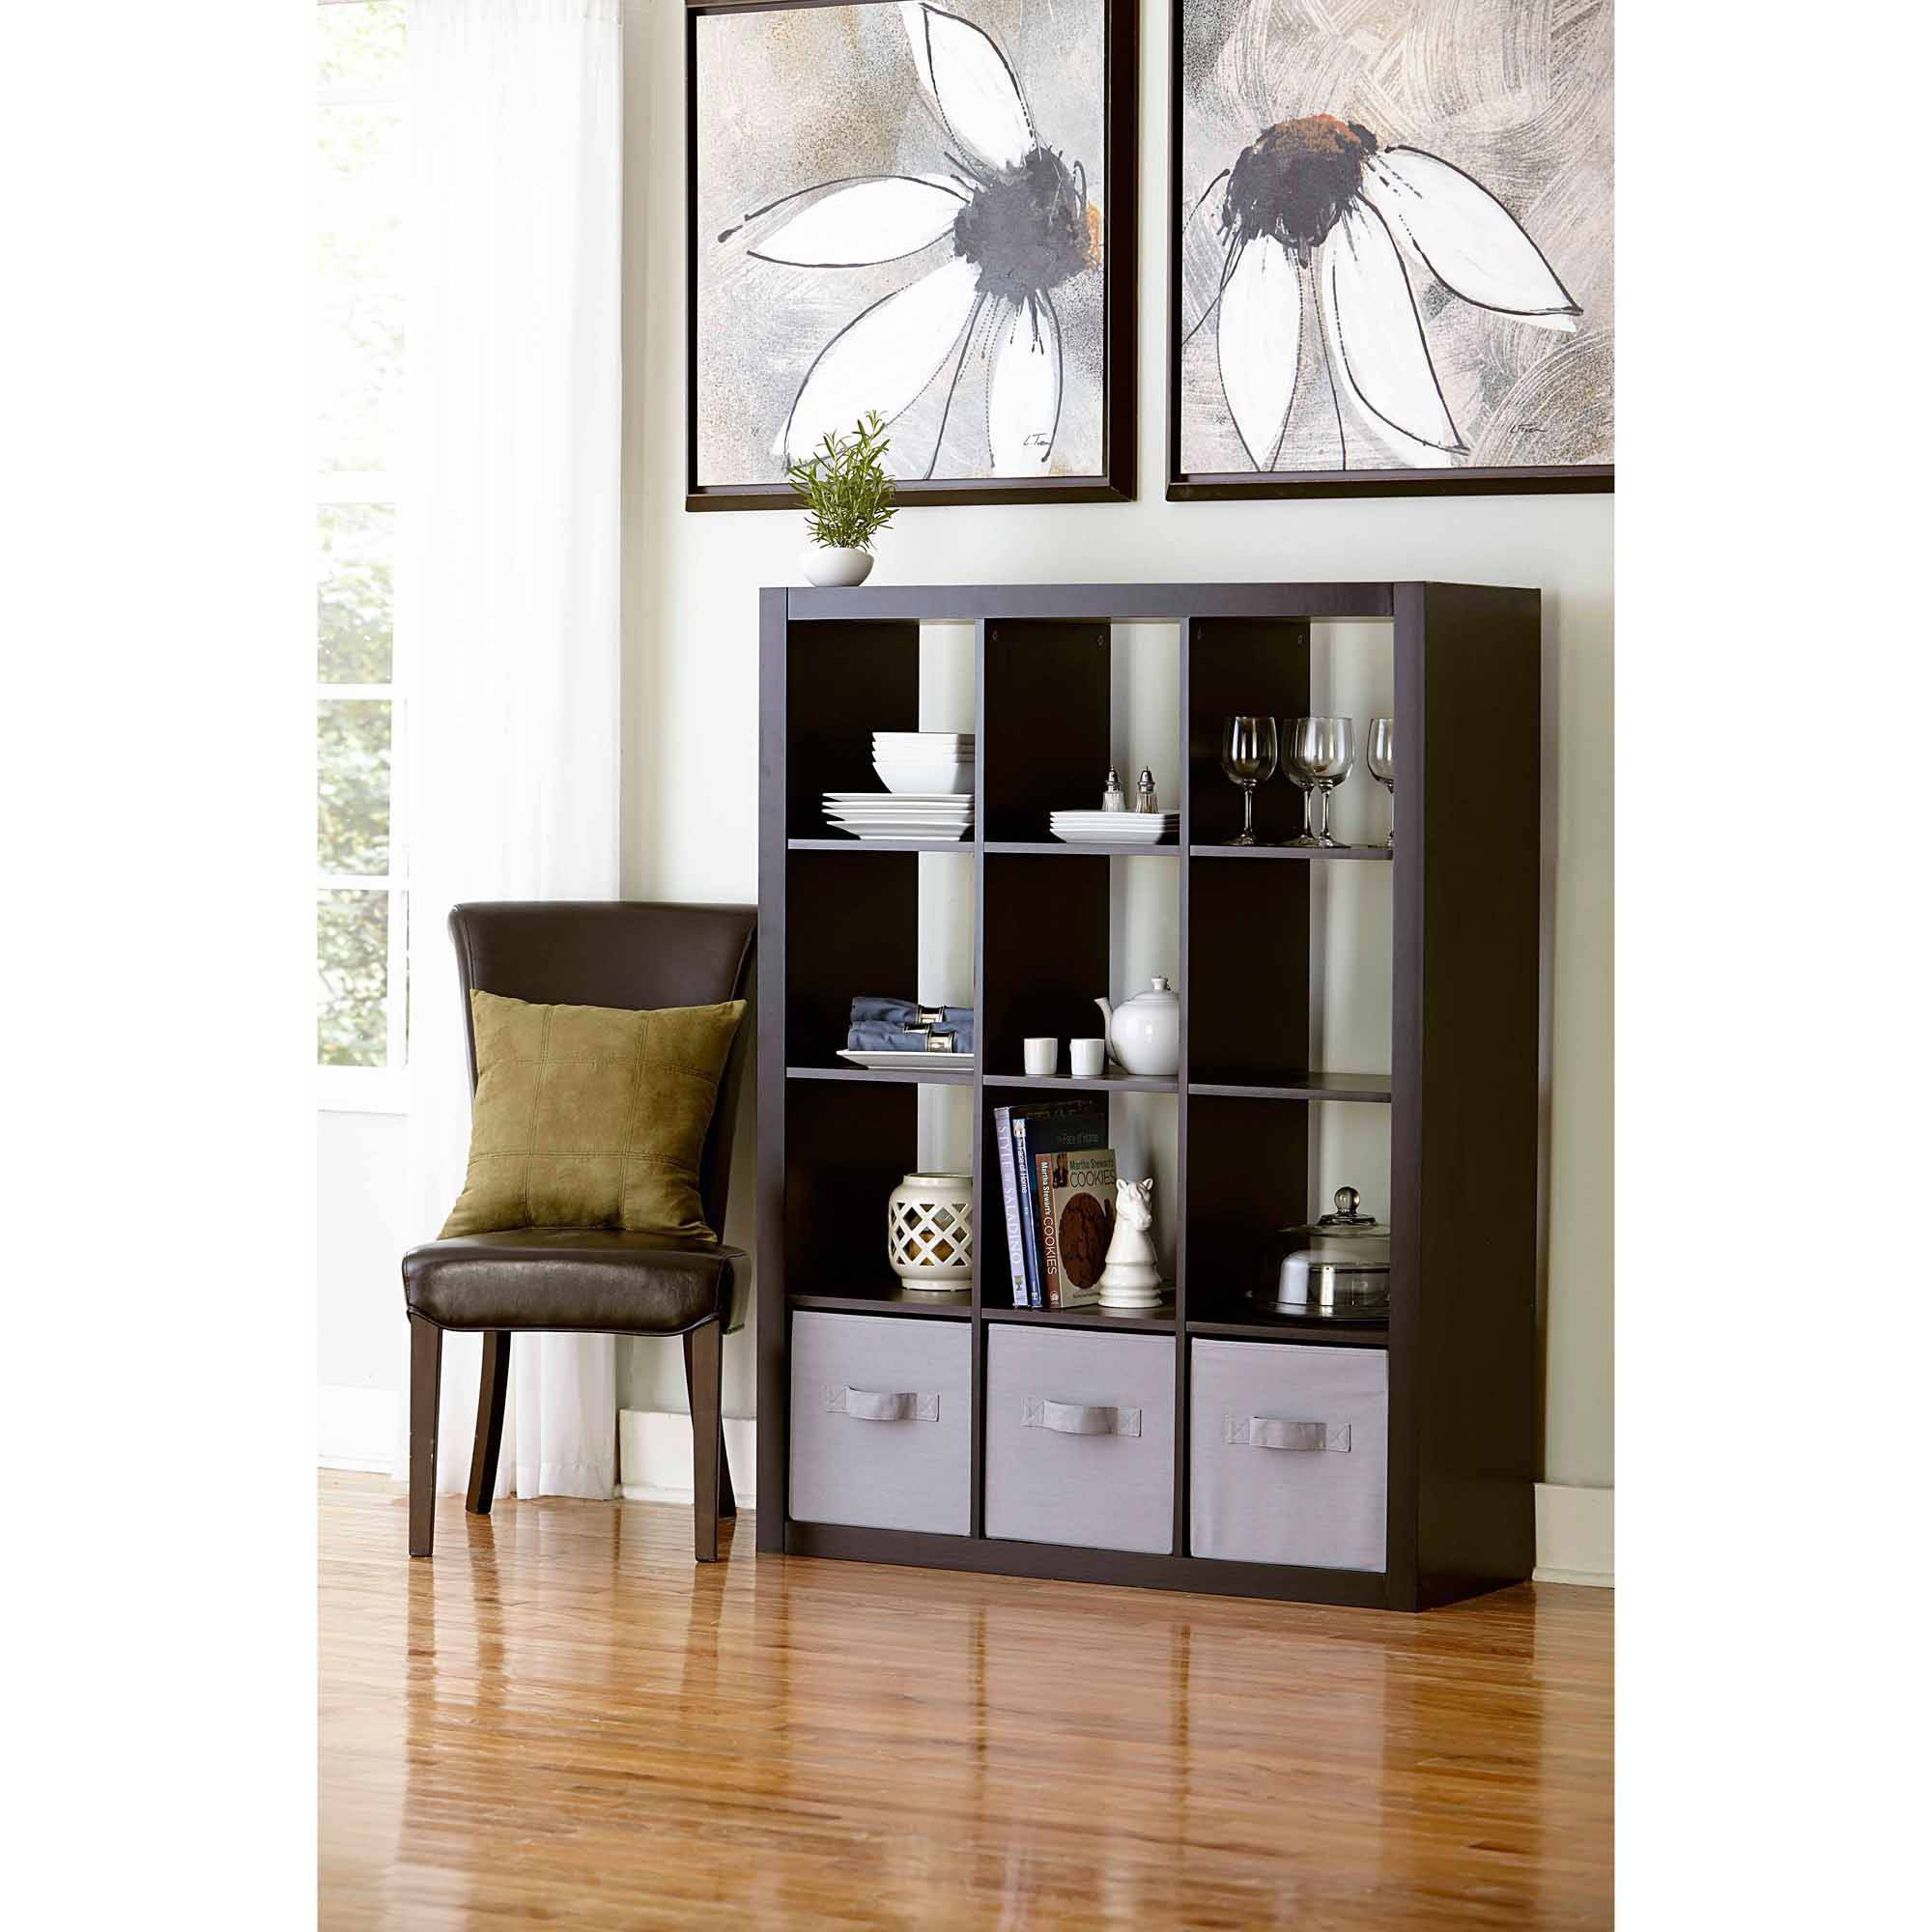 Martha Stewart Cube Storage Best Storage Design 2017